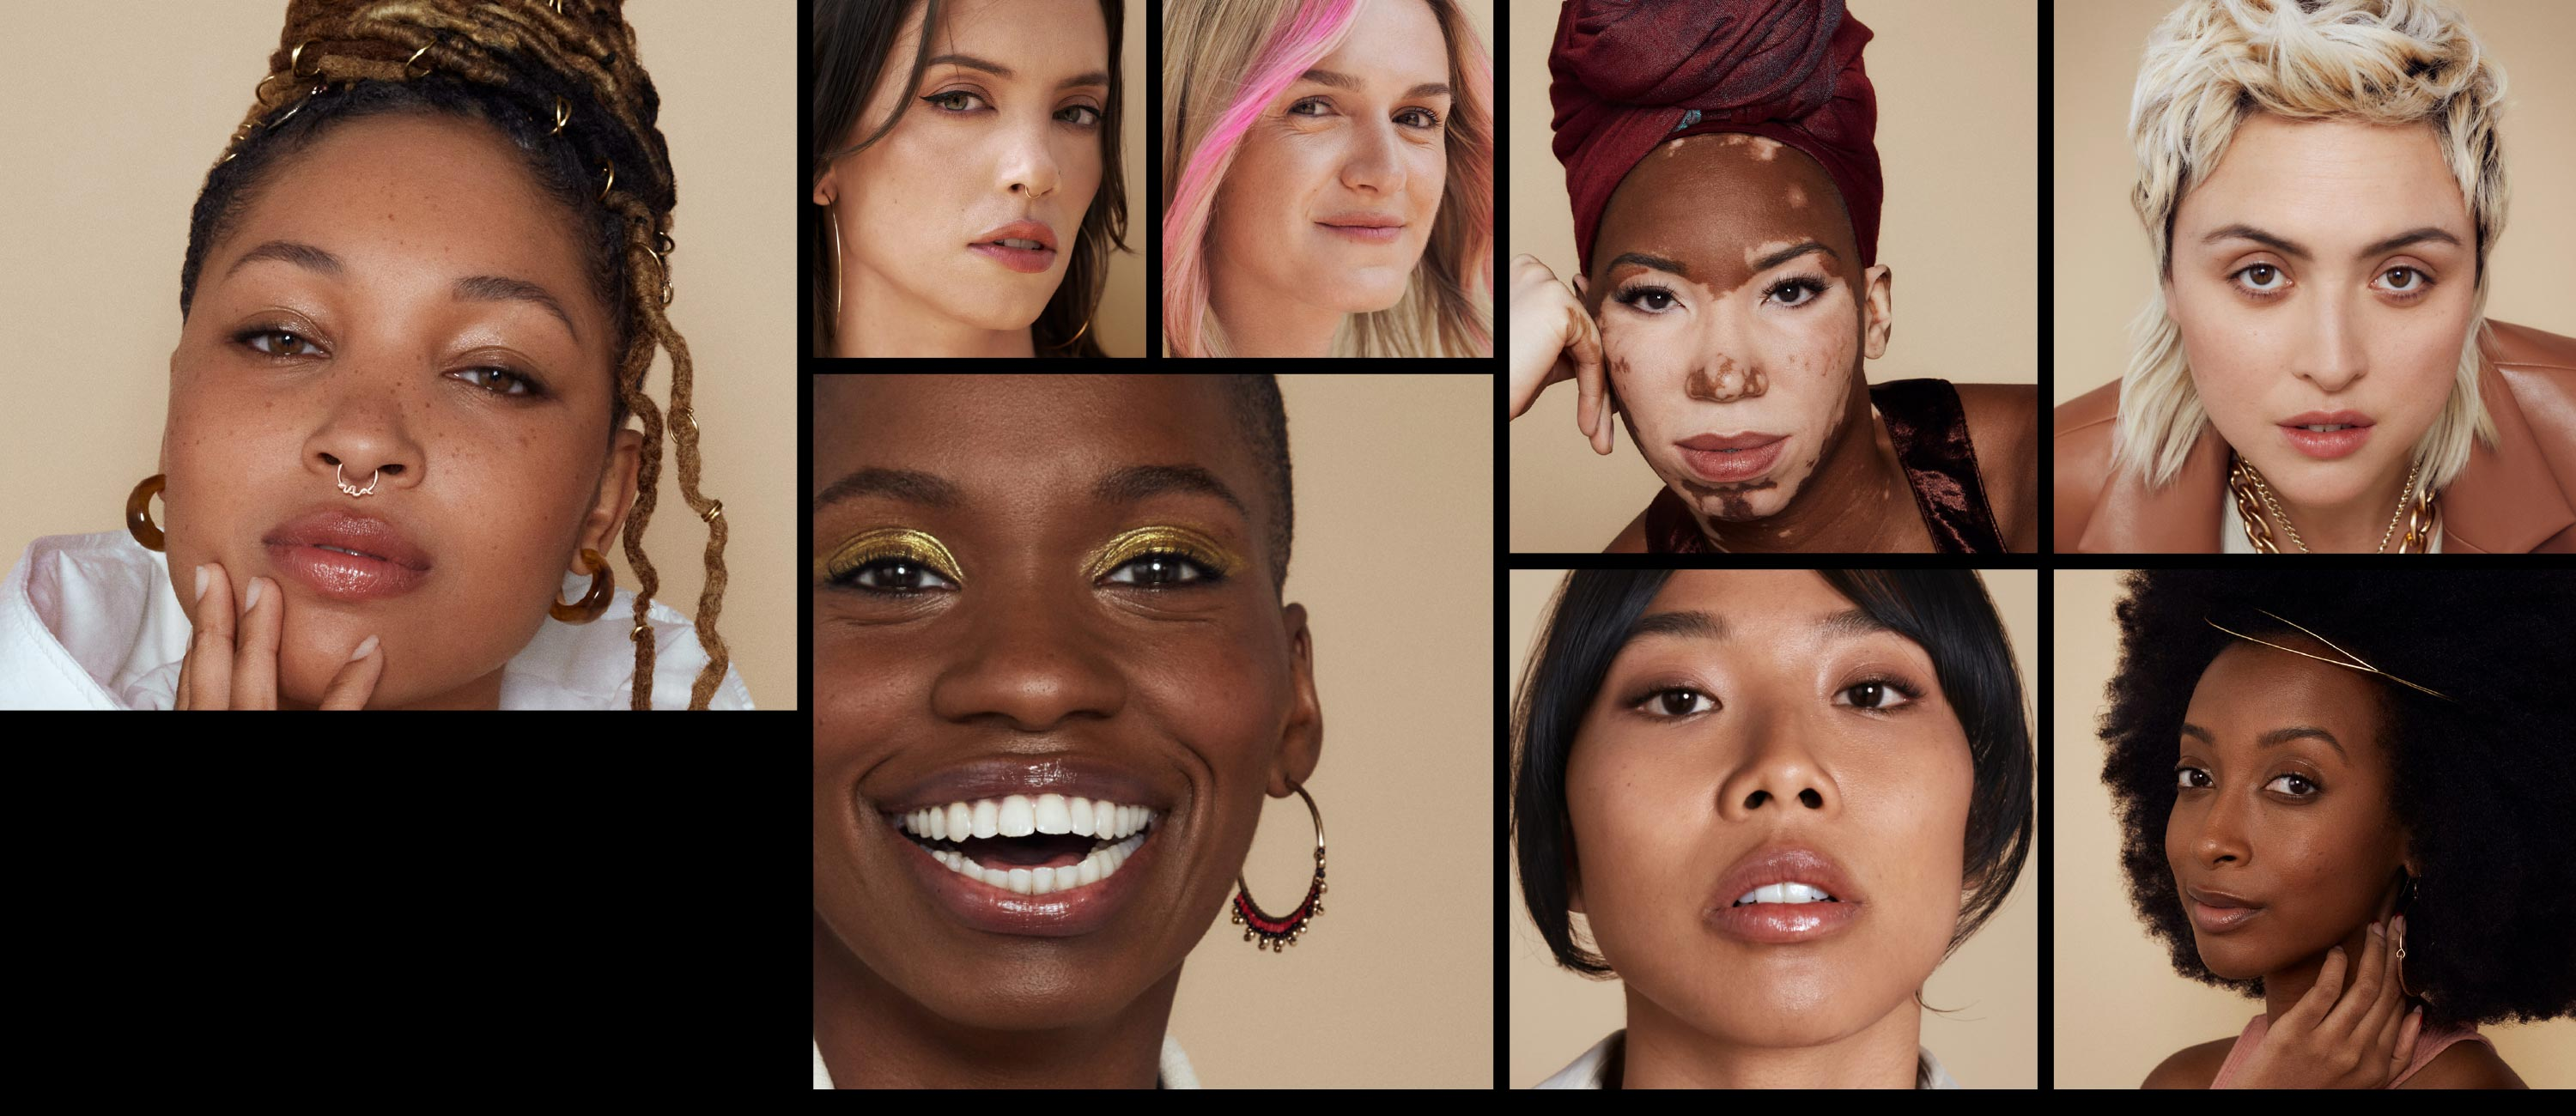 Portraits of eight women of different races. Smiling and posing